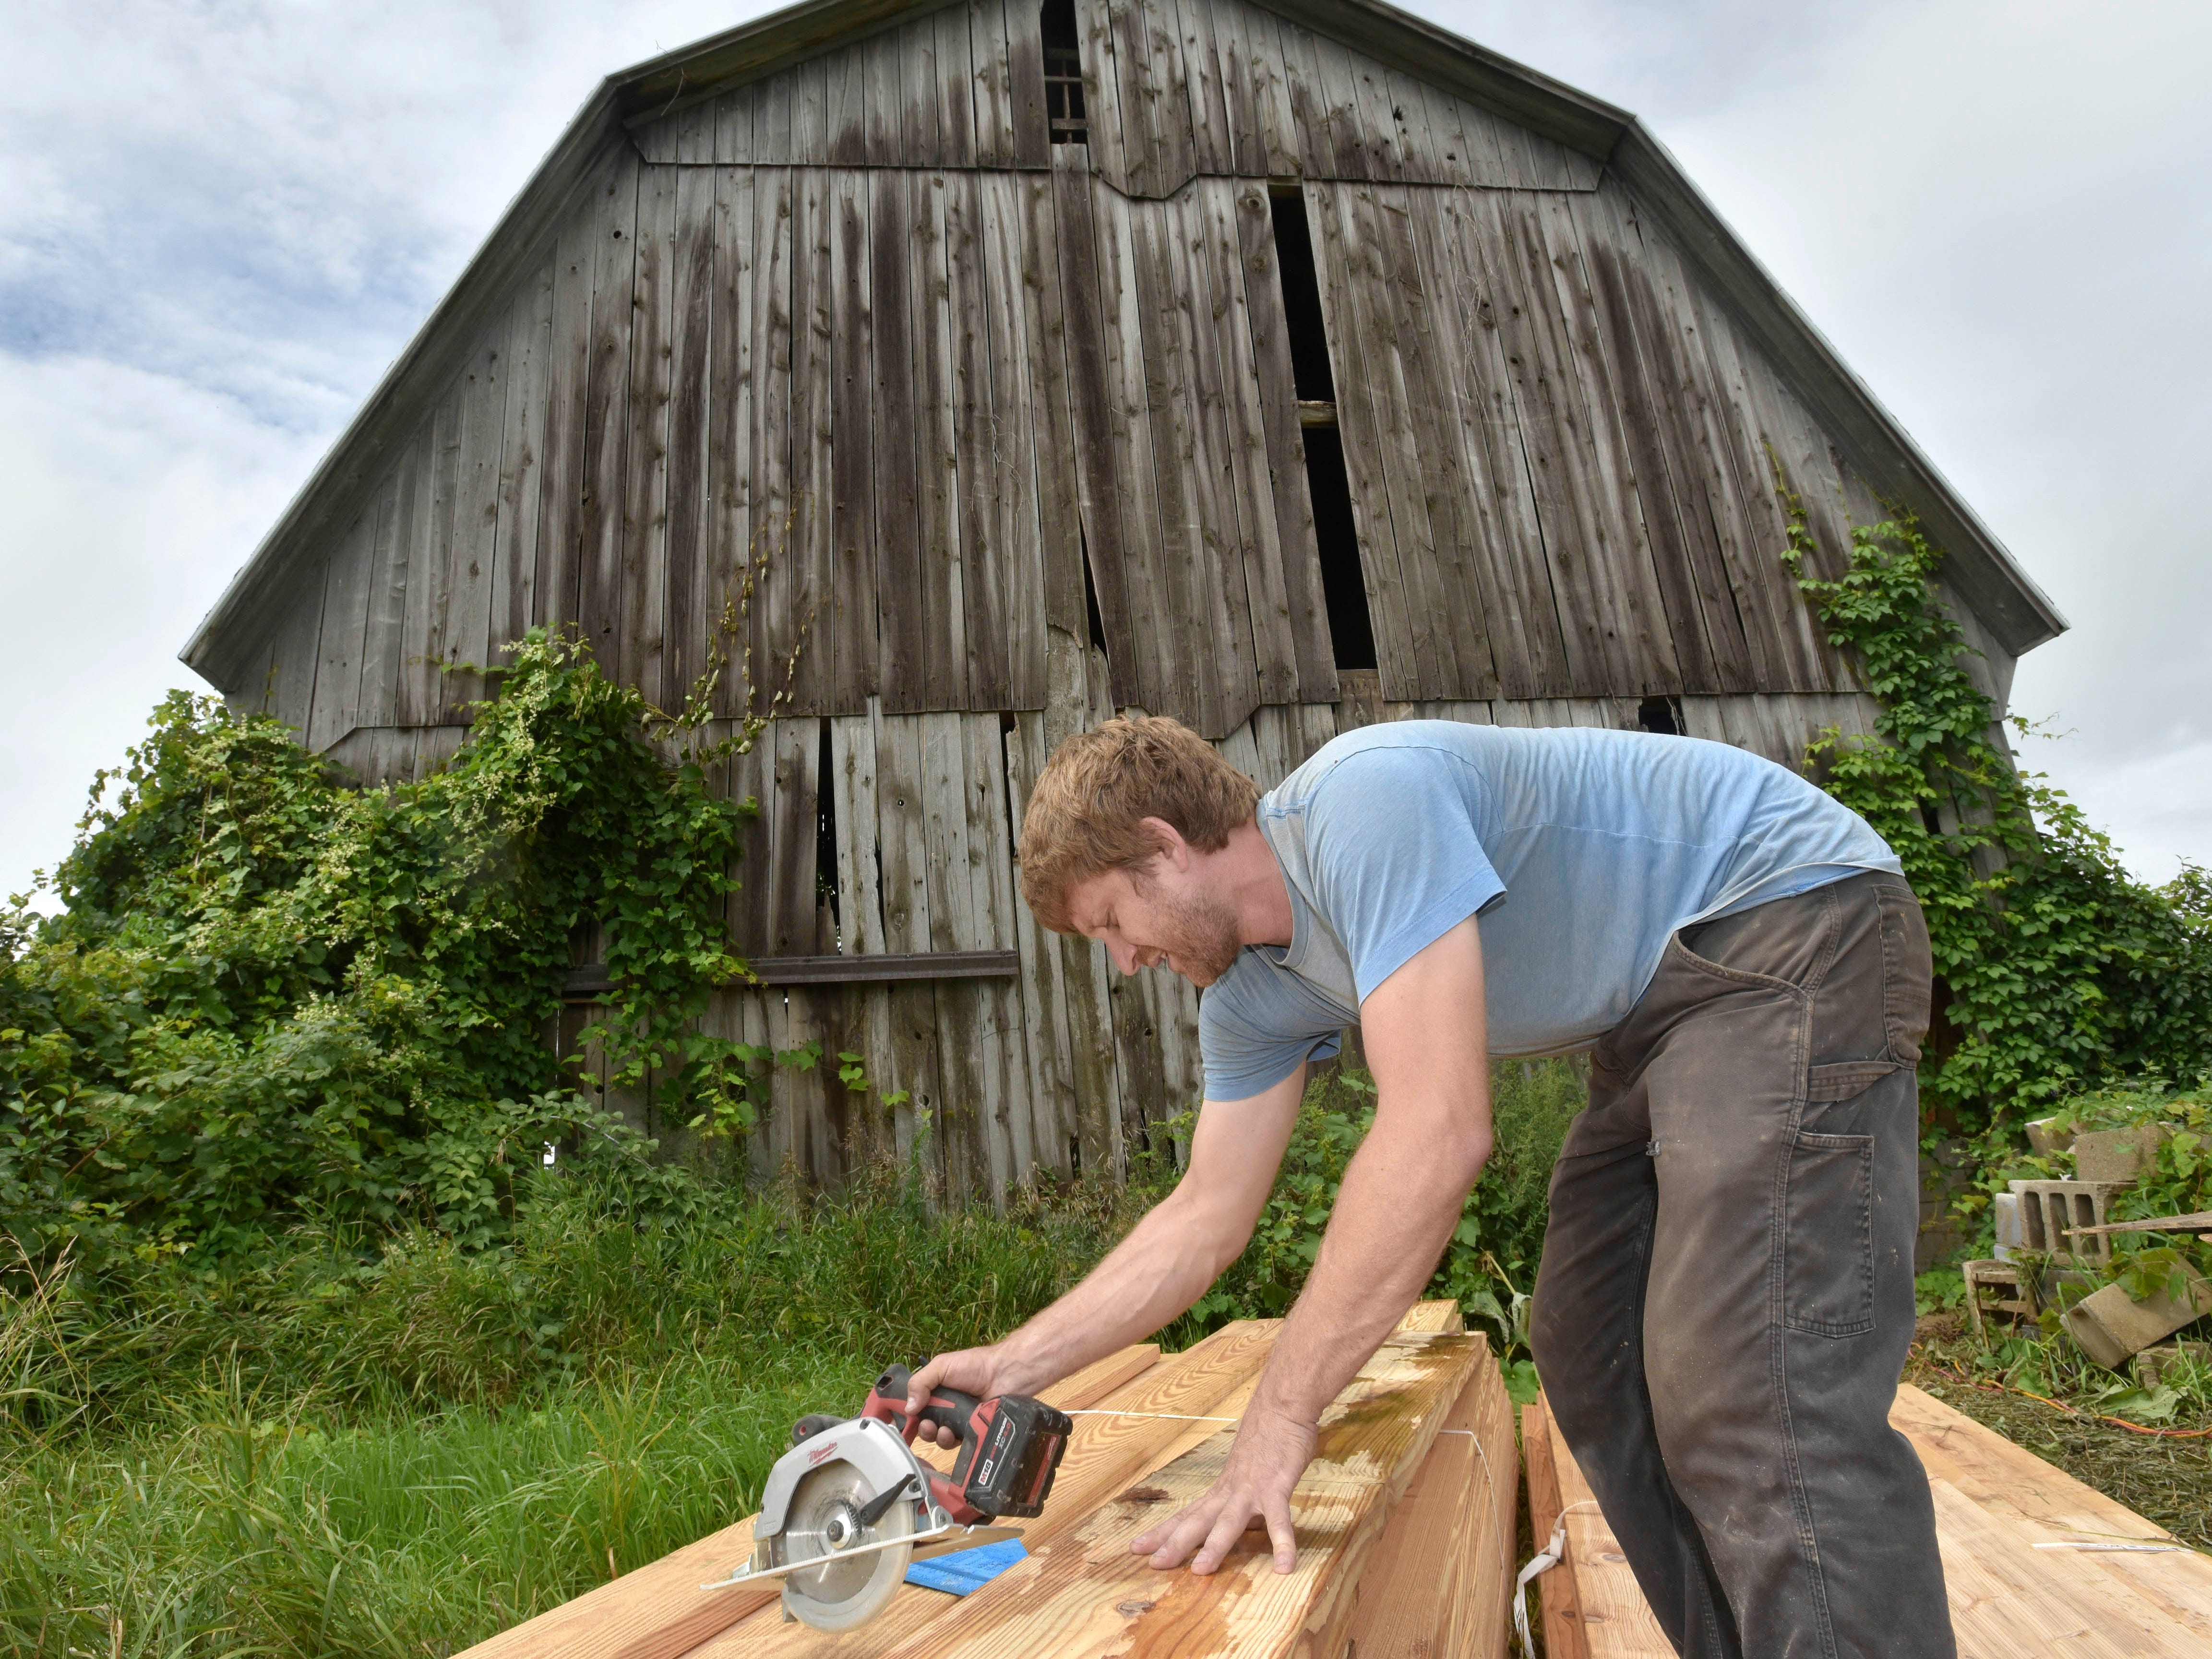 Construction Services owner Charlie O'Geen, 33, of Detroit is a sub-contractor for barn artist Catie Newell, helping her turn this old barn into an art project.